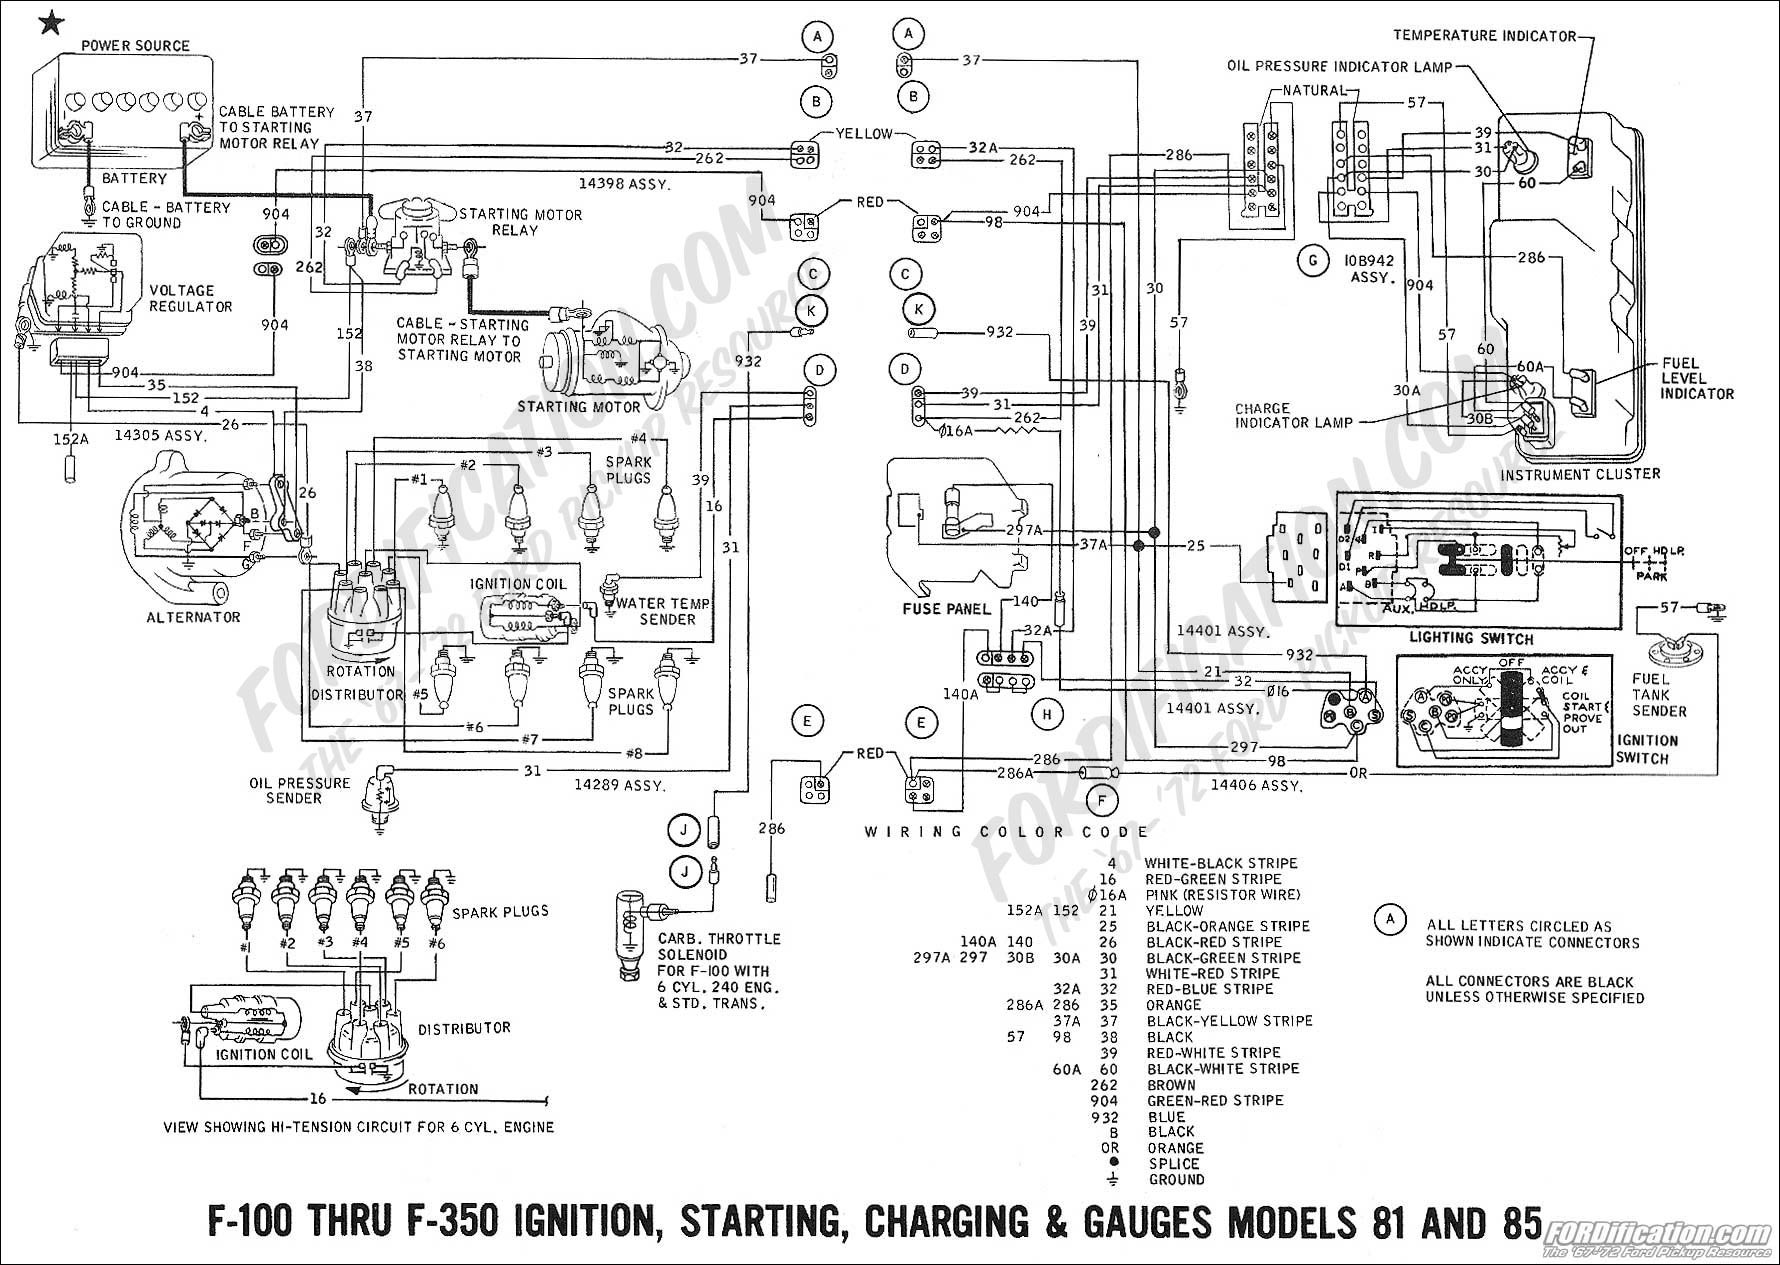 hight resolution of 68 f100 fuse box schematics wiring diagrams u2022 rh seniorlivinguniversity co 1965 ford alternator wiring diagram